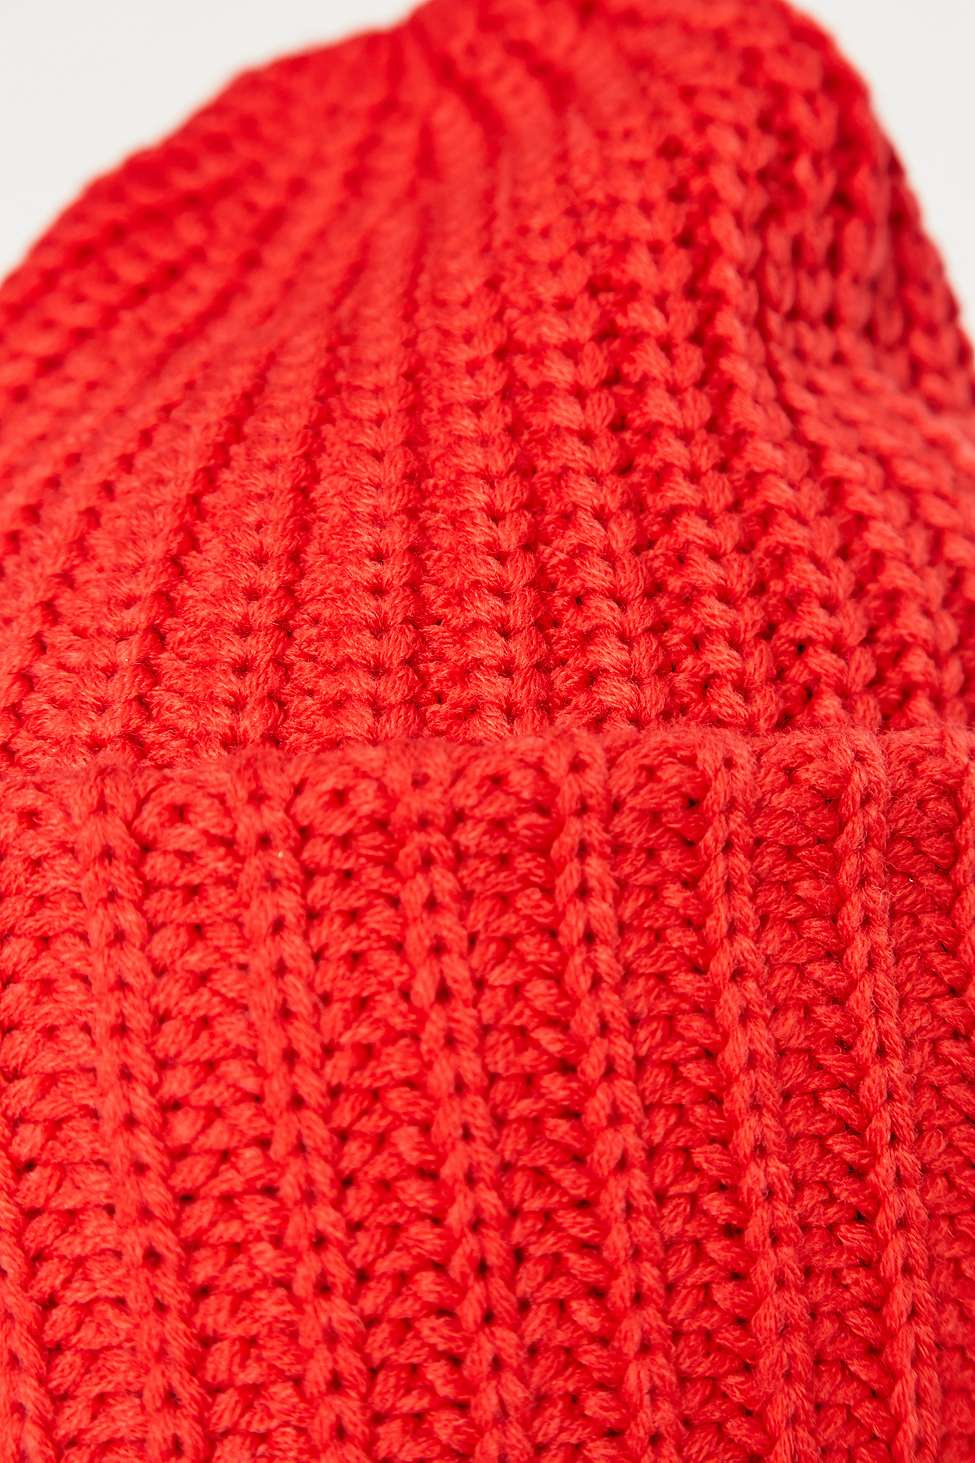 9f7abc9d75b Urban Outfitters Ribbed Stand-up Beanie in Red - Lyst